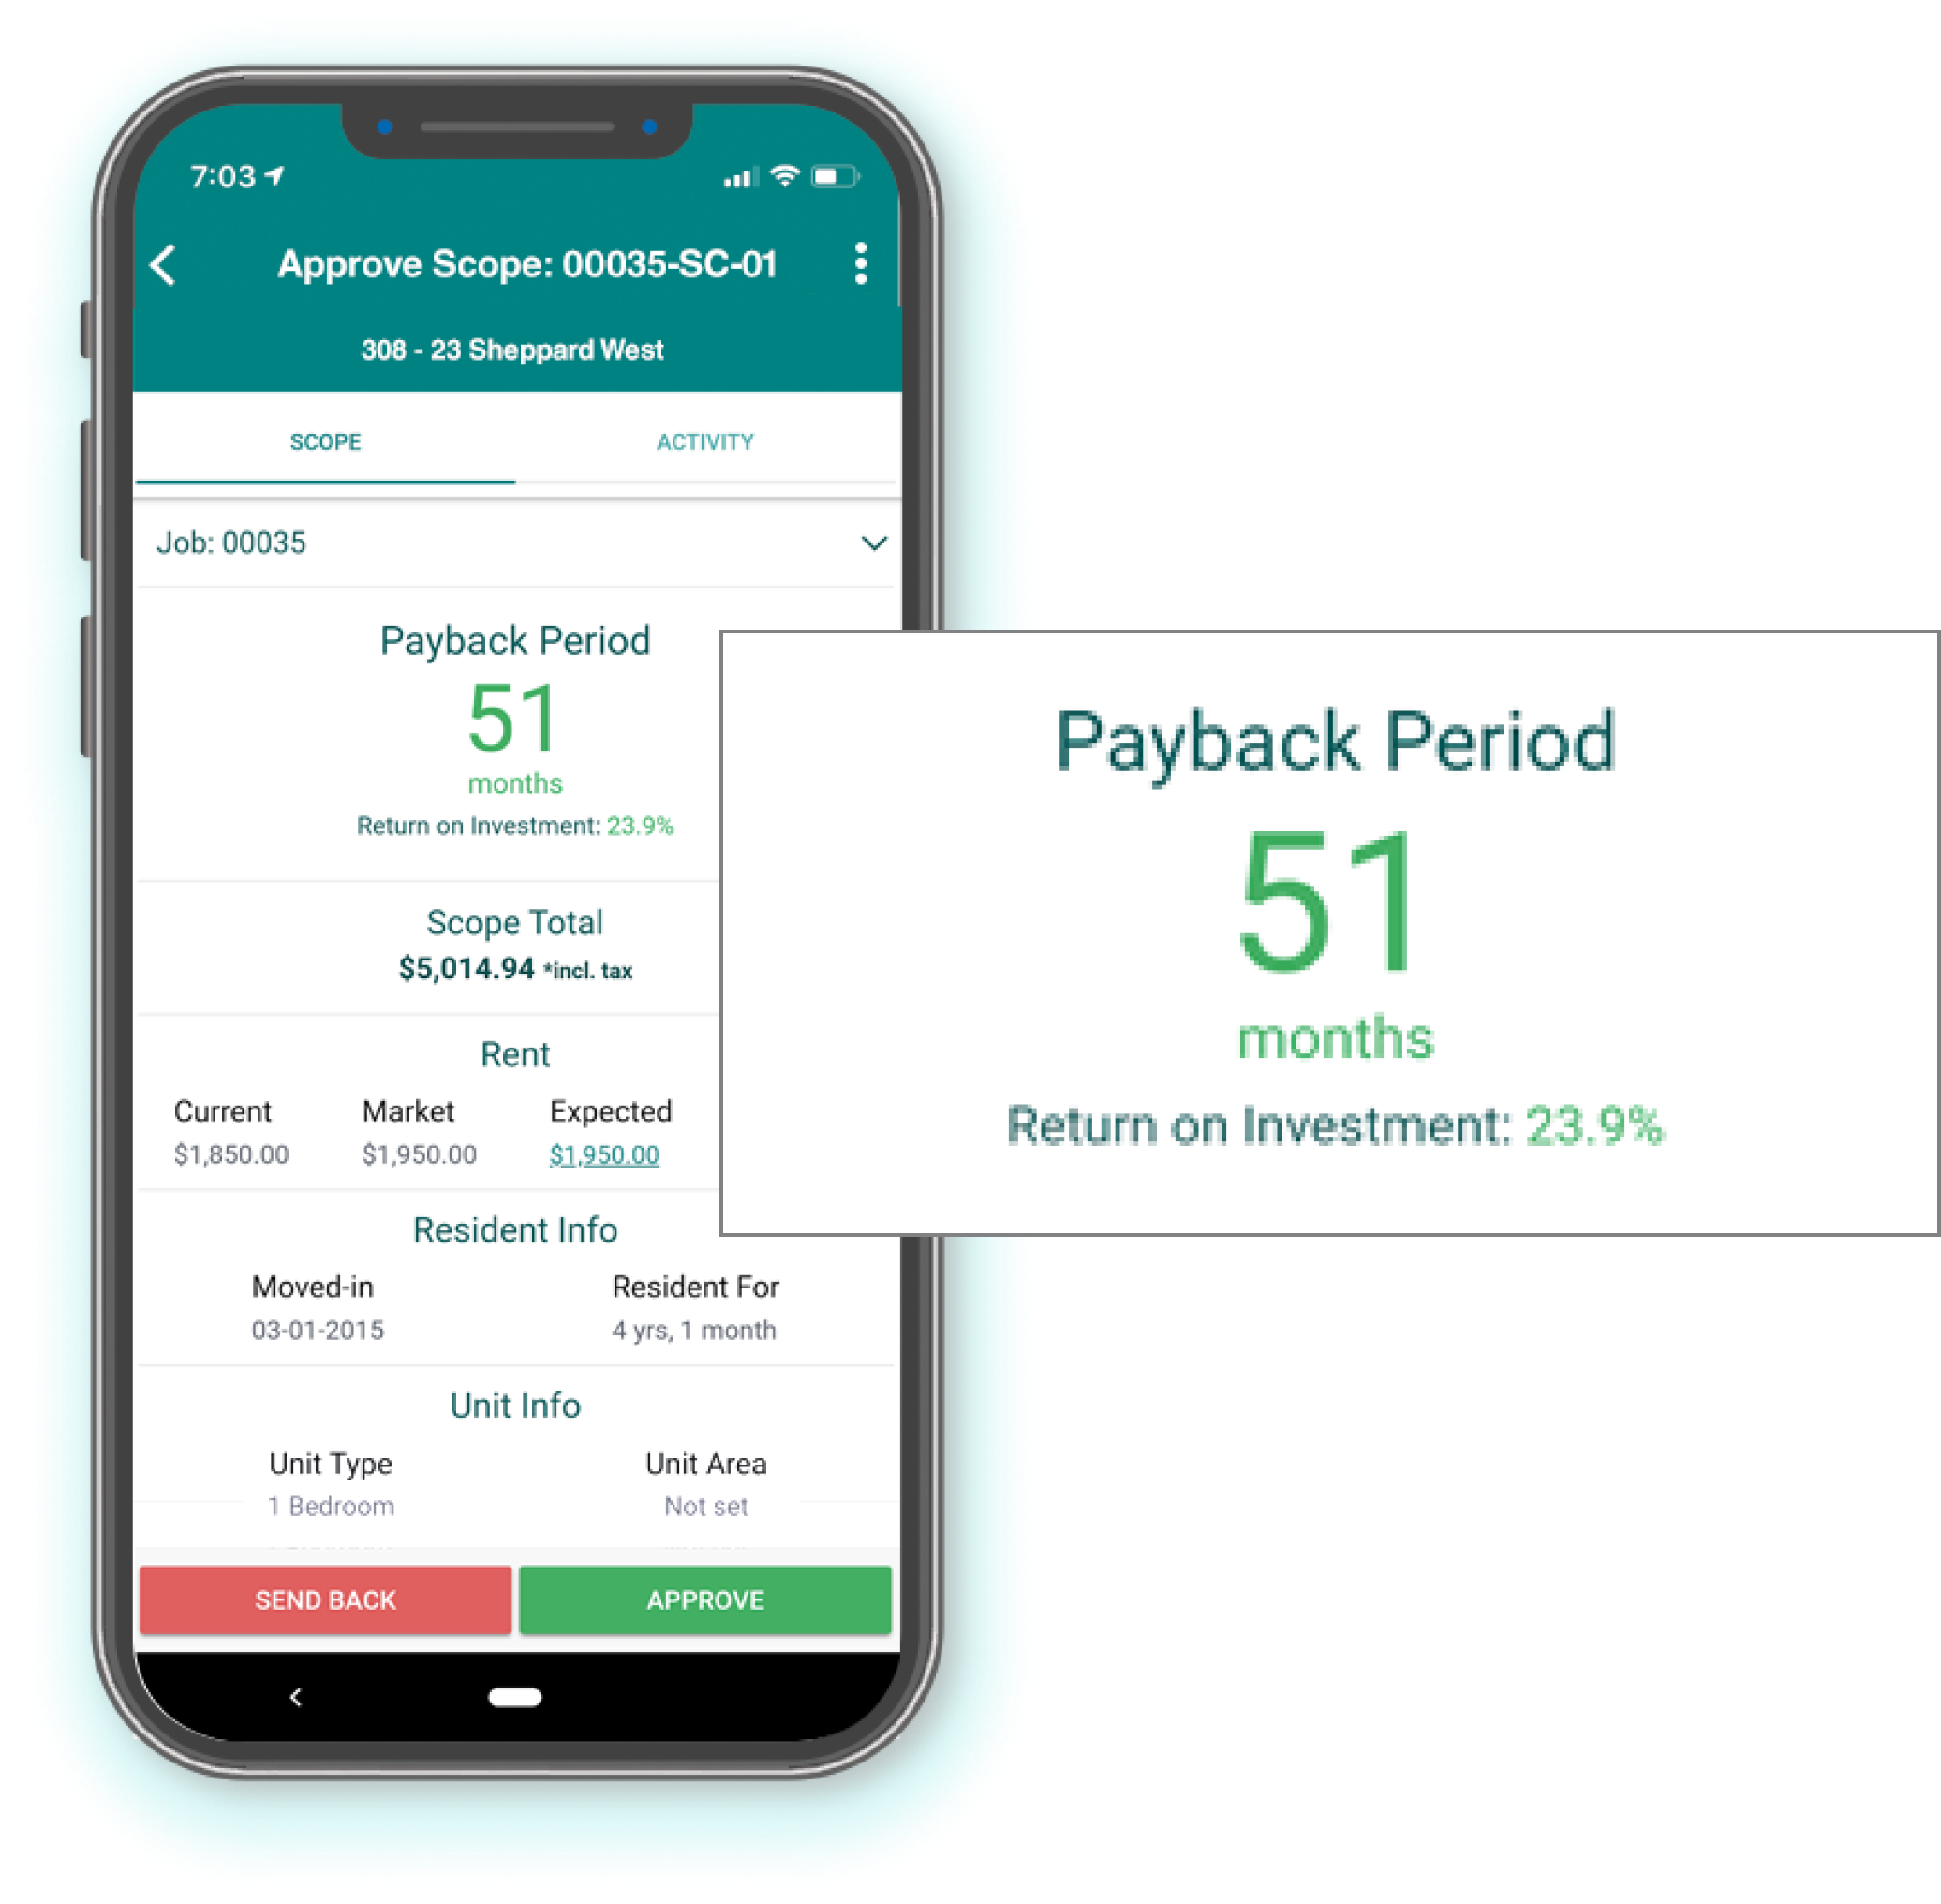 Mobile - approve scope and payback period